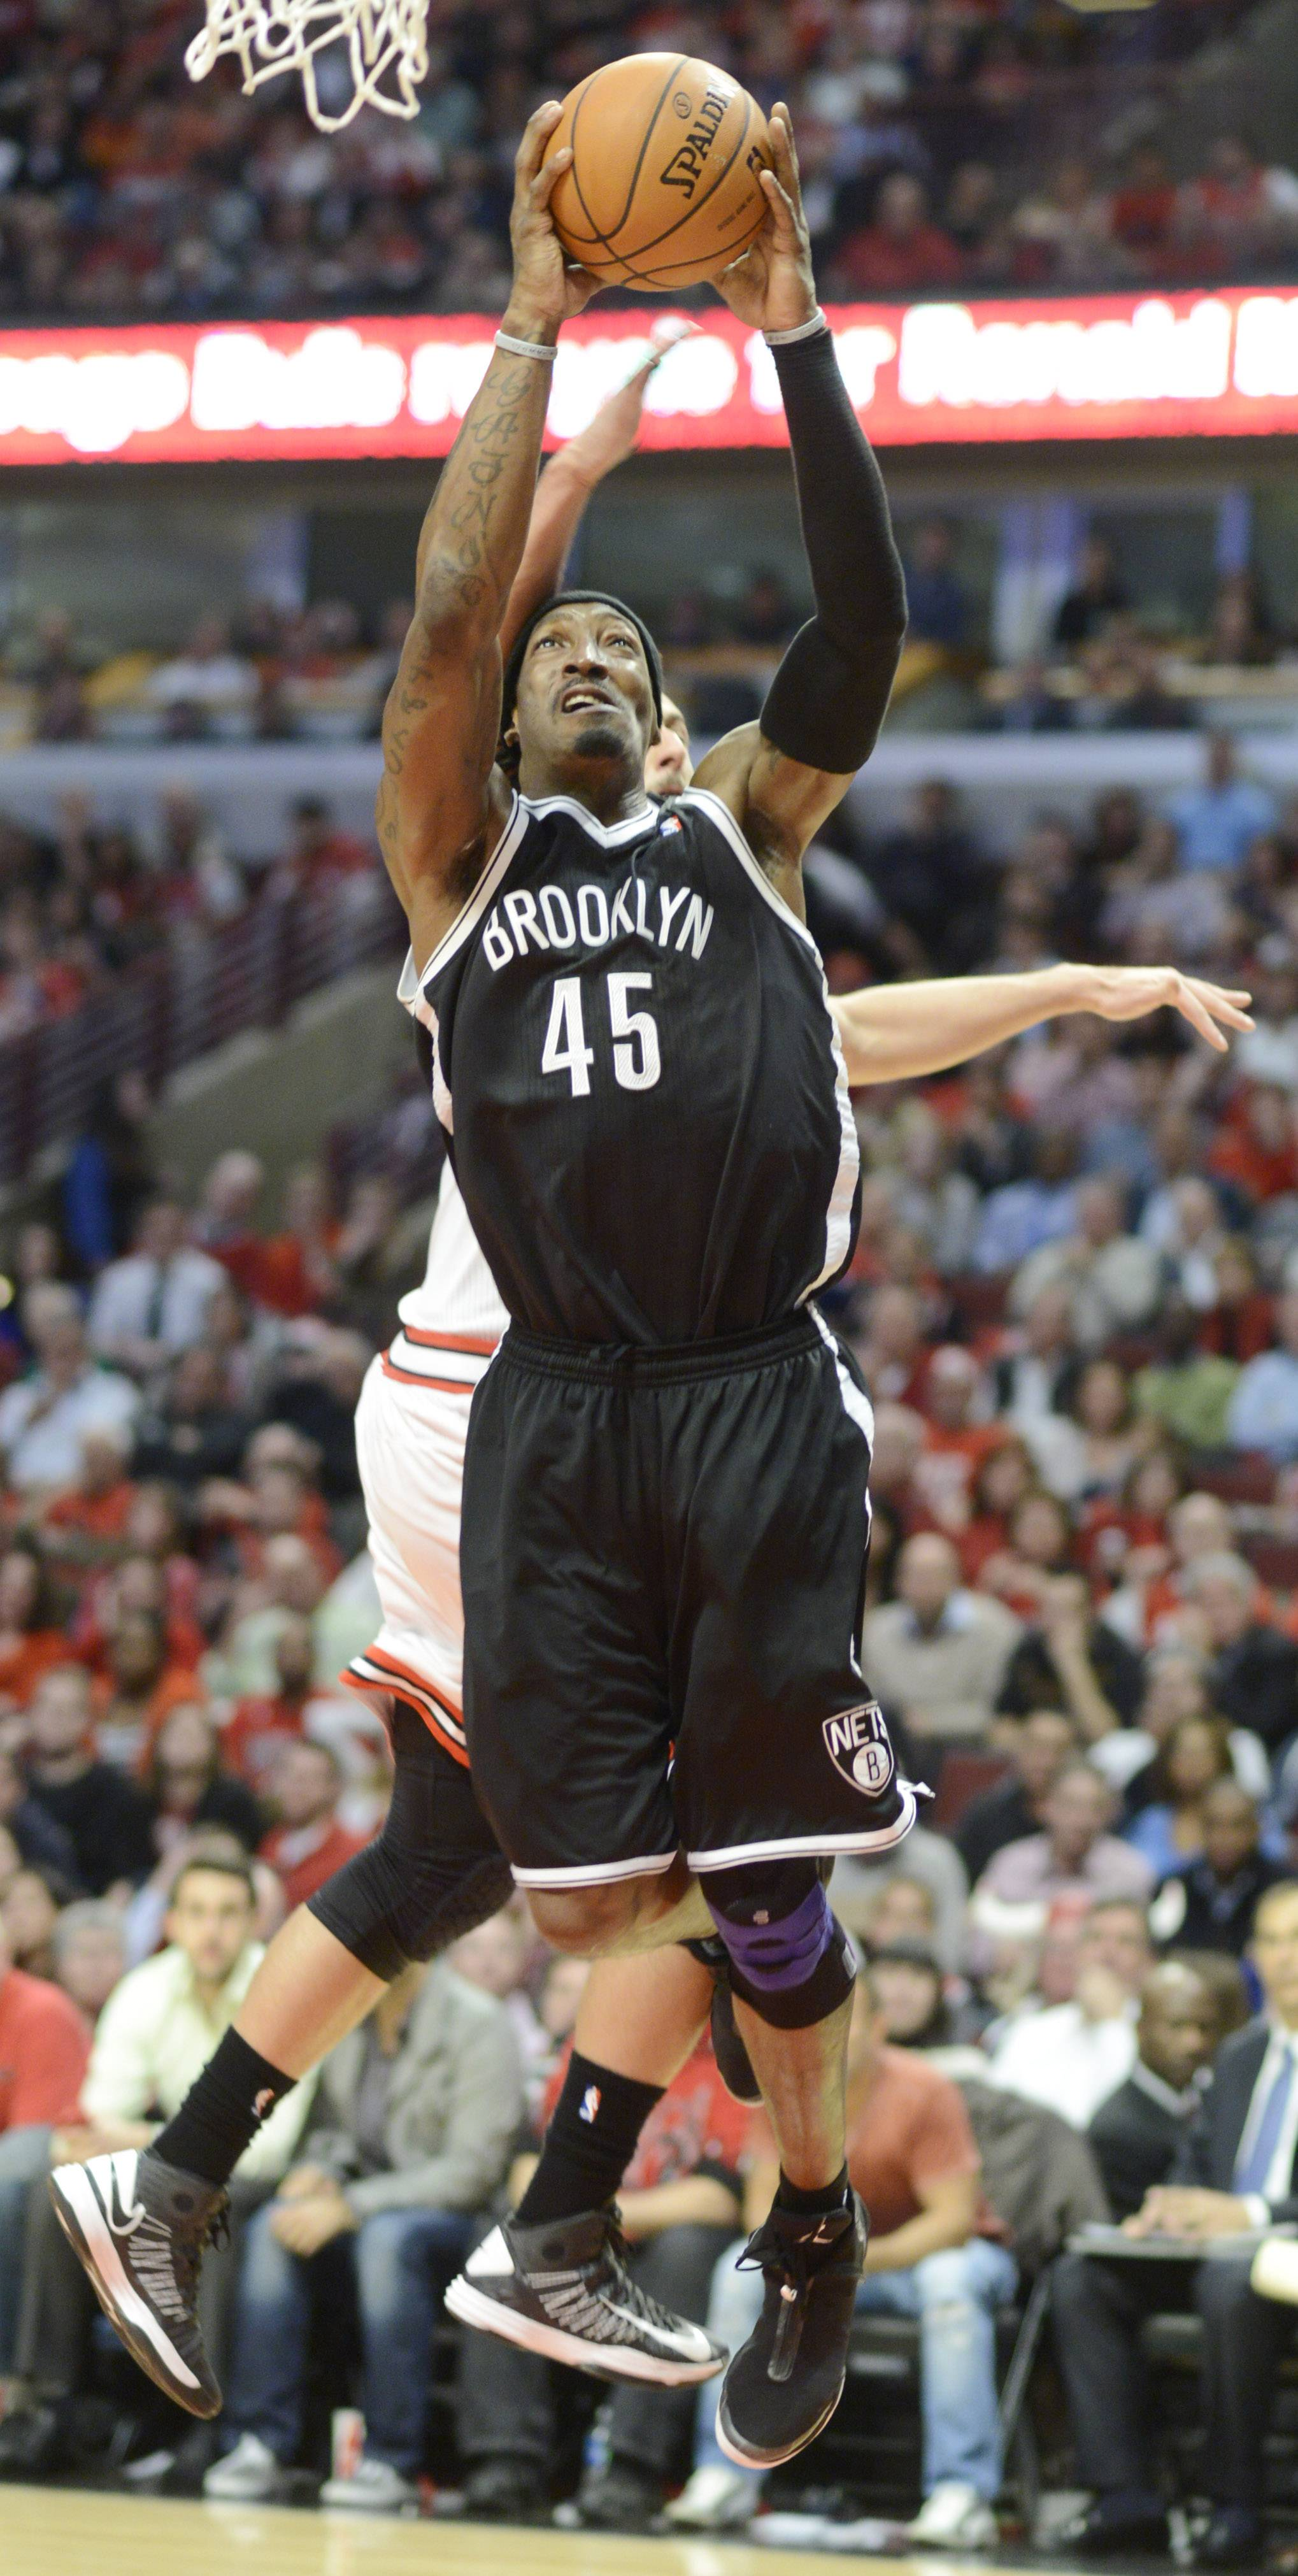 Gerald Wallace of the Brooklyn Nets goes to the basket against marco Belinelli of the Chicago Bulls in Game 6 of the first round playoff game at the United Center in Chicago, Thursday, May 2, 2013.